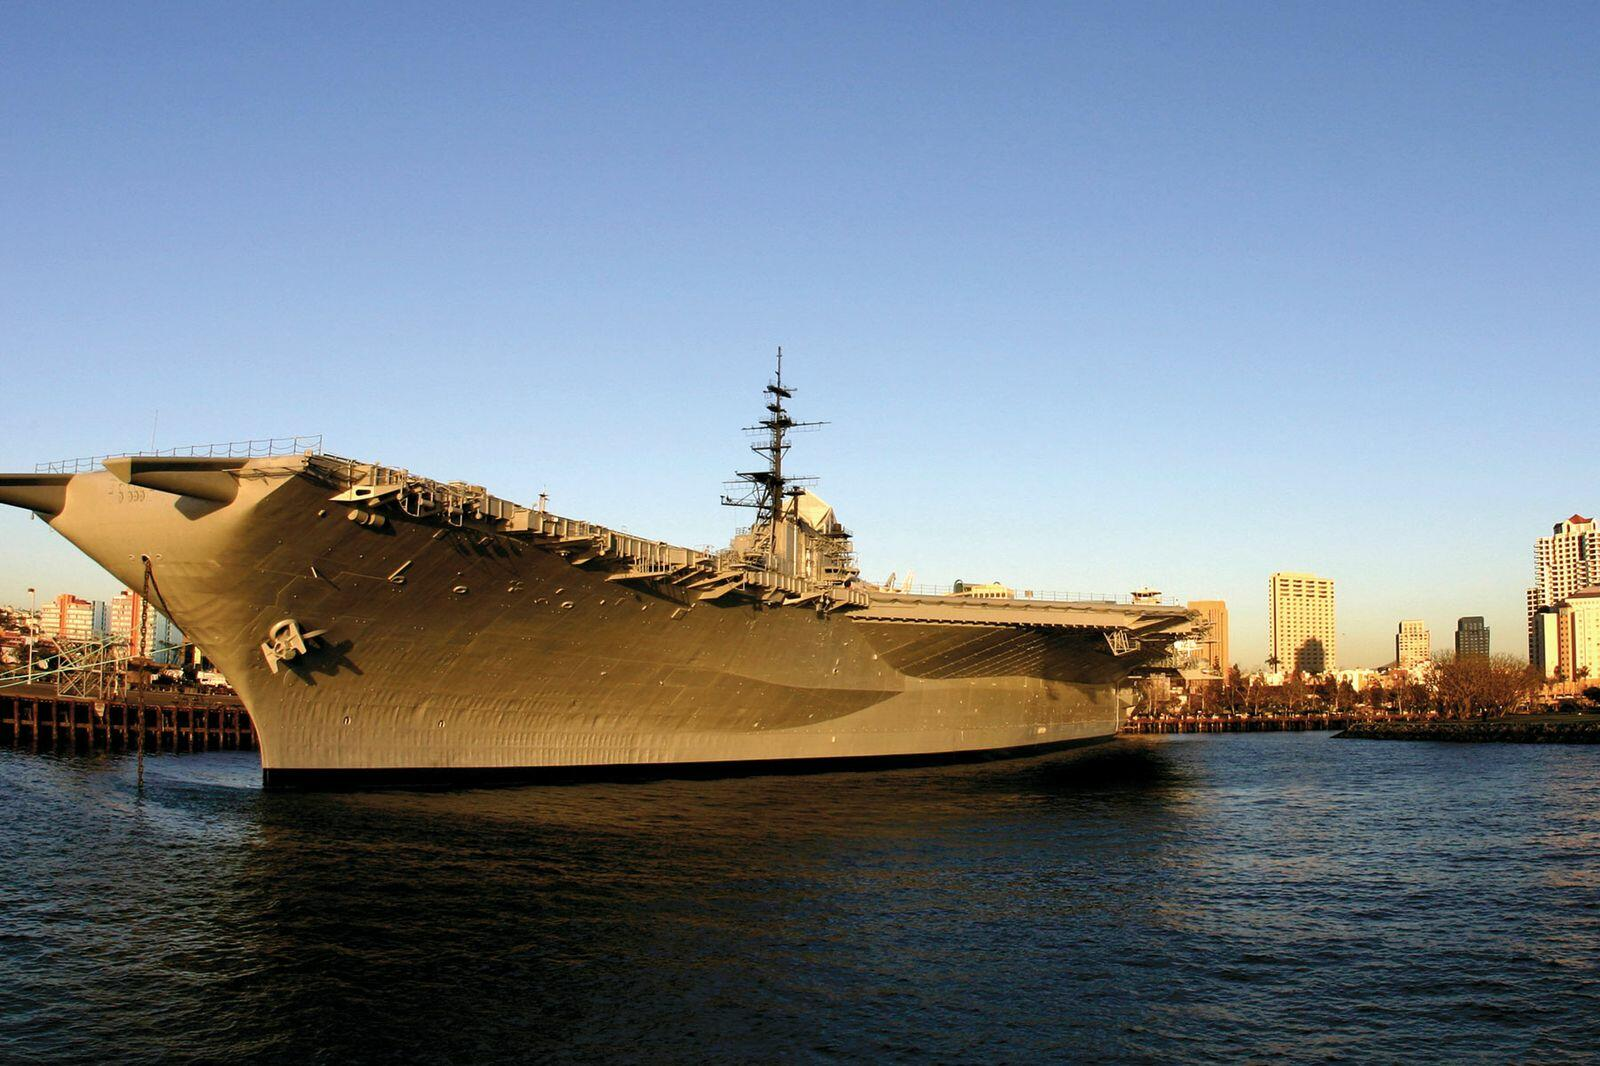 Late afternoon view of the USS Midway Museum aircraft carrier